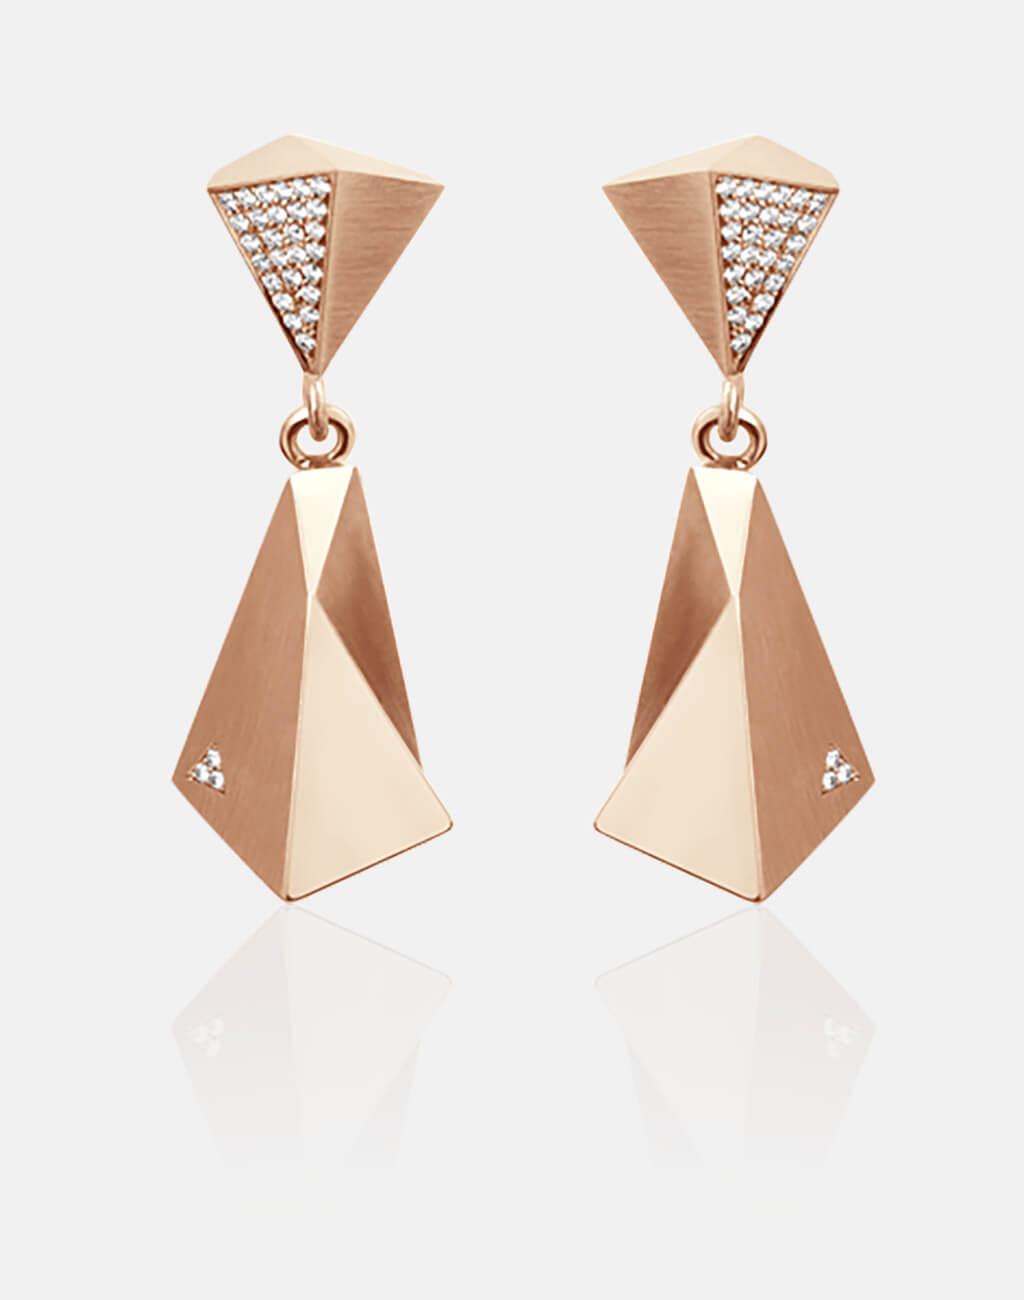 Stealth | Ohrringe, Ohrhänger - 750 Roségold, 60 Diamanten-Brillanten | earrings - 18kt rose gold, 60 diamonds | SYNO-Schmuck.com